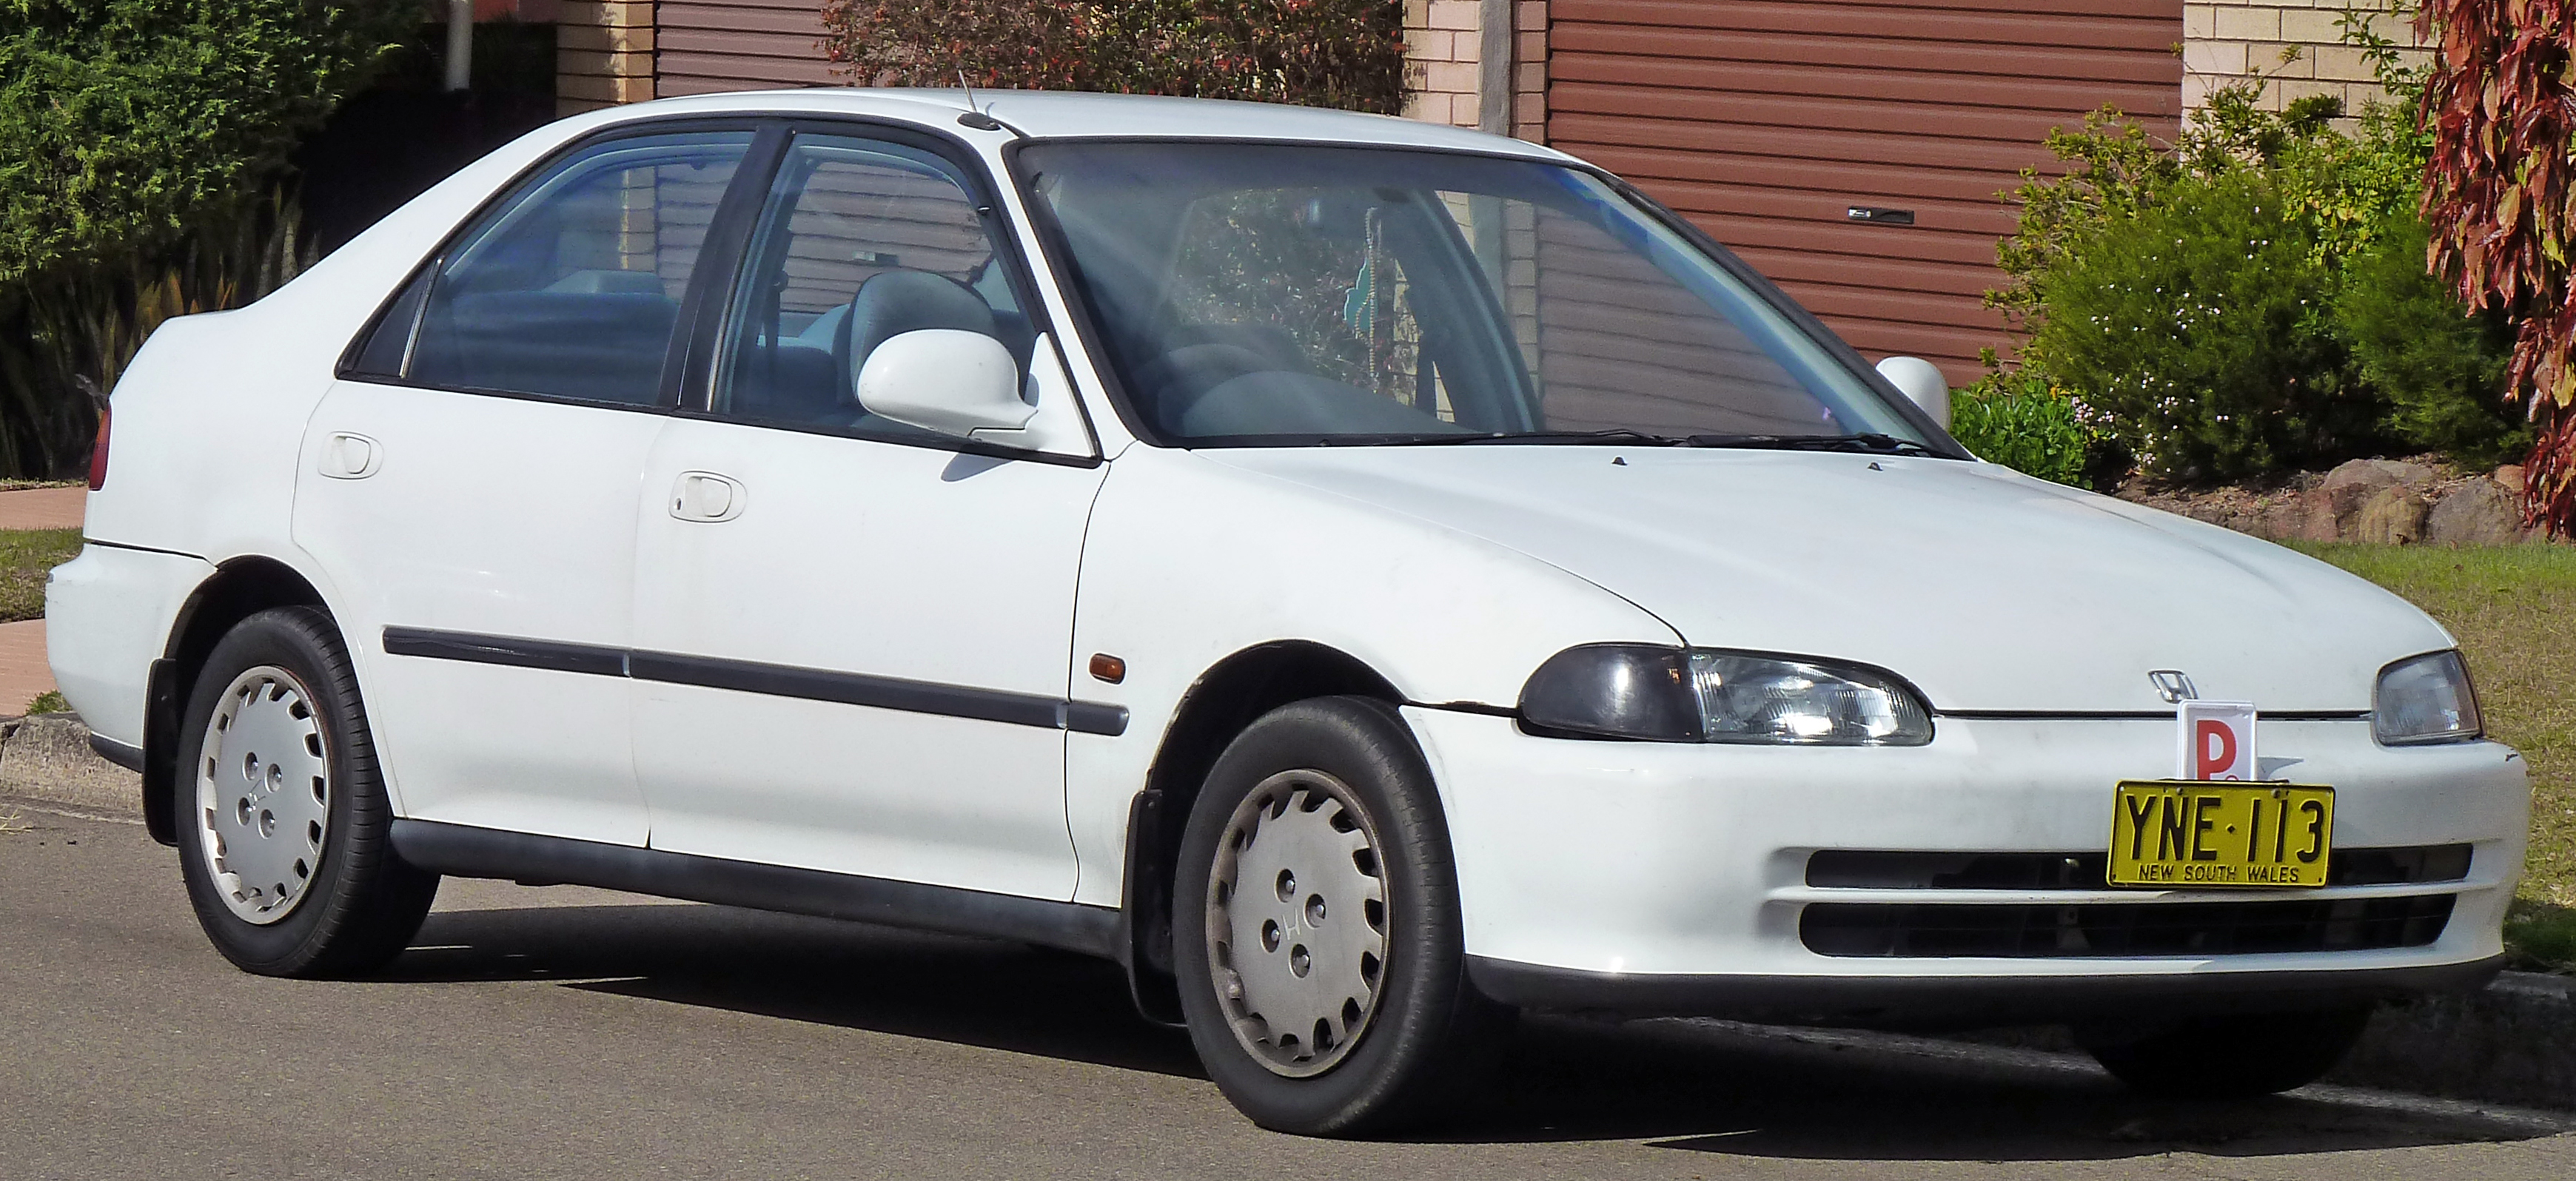 honda civic hatchback v 1991 pictures #7